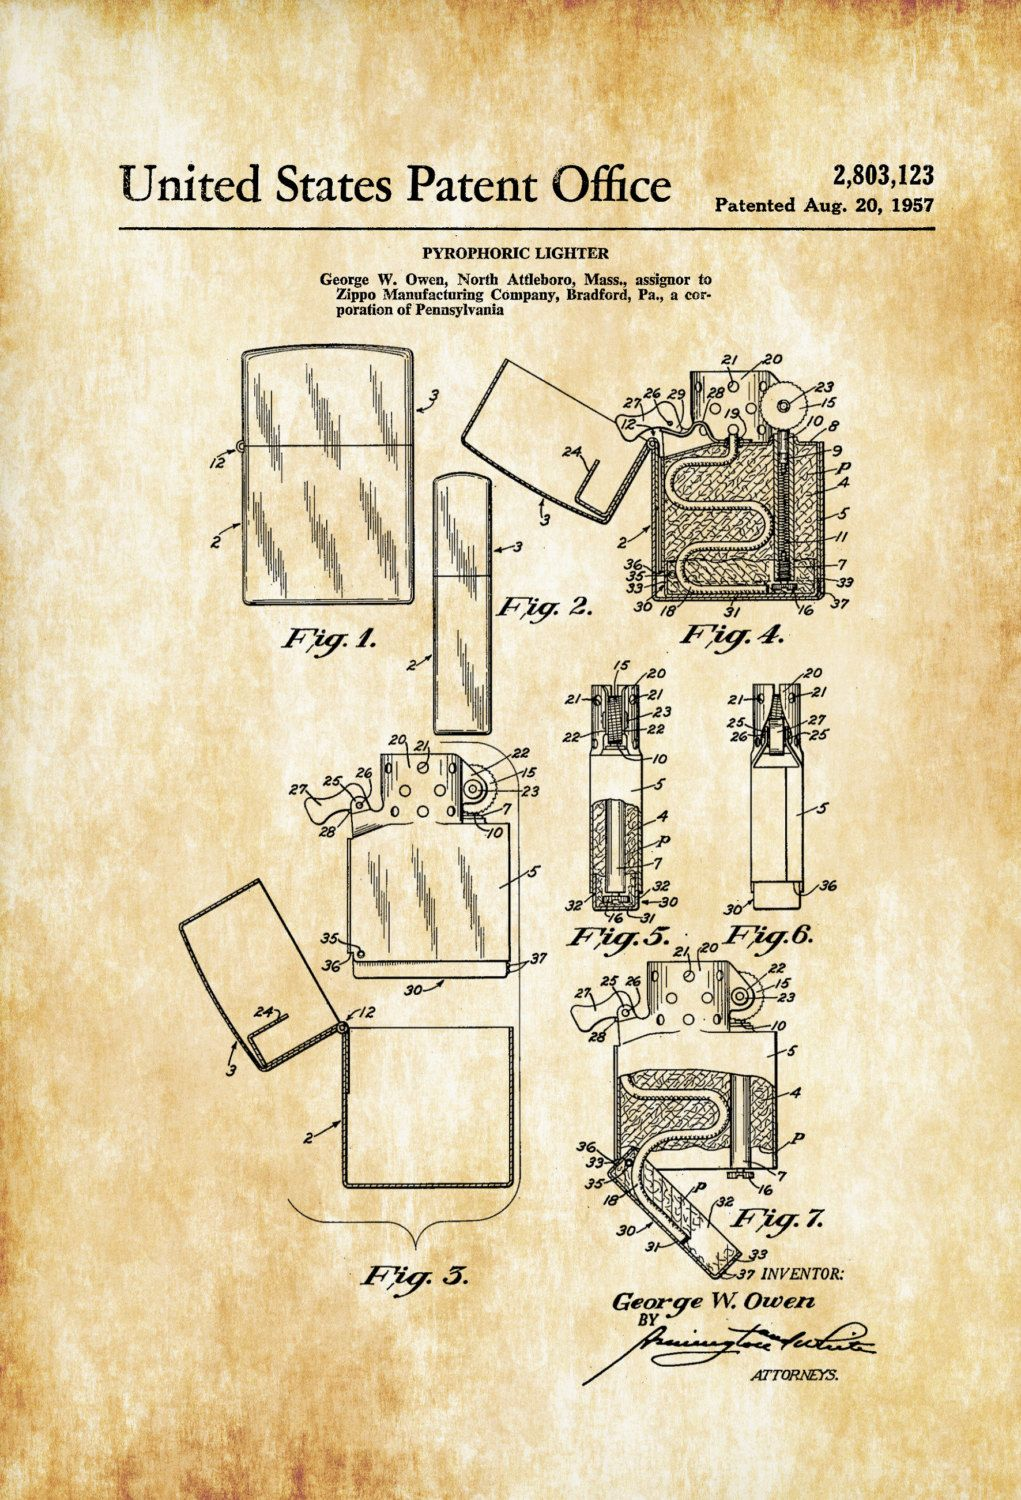 1957 zippo lighter patent decor patent print lighter patent 1957 zippo lighter patent decor patent print lighter patent vintage lighter lighter blueprint zippo patent cigar lounge decor malvernweather Image collections